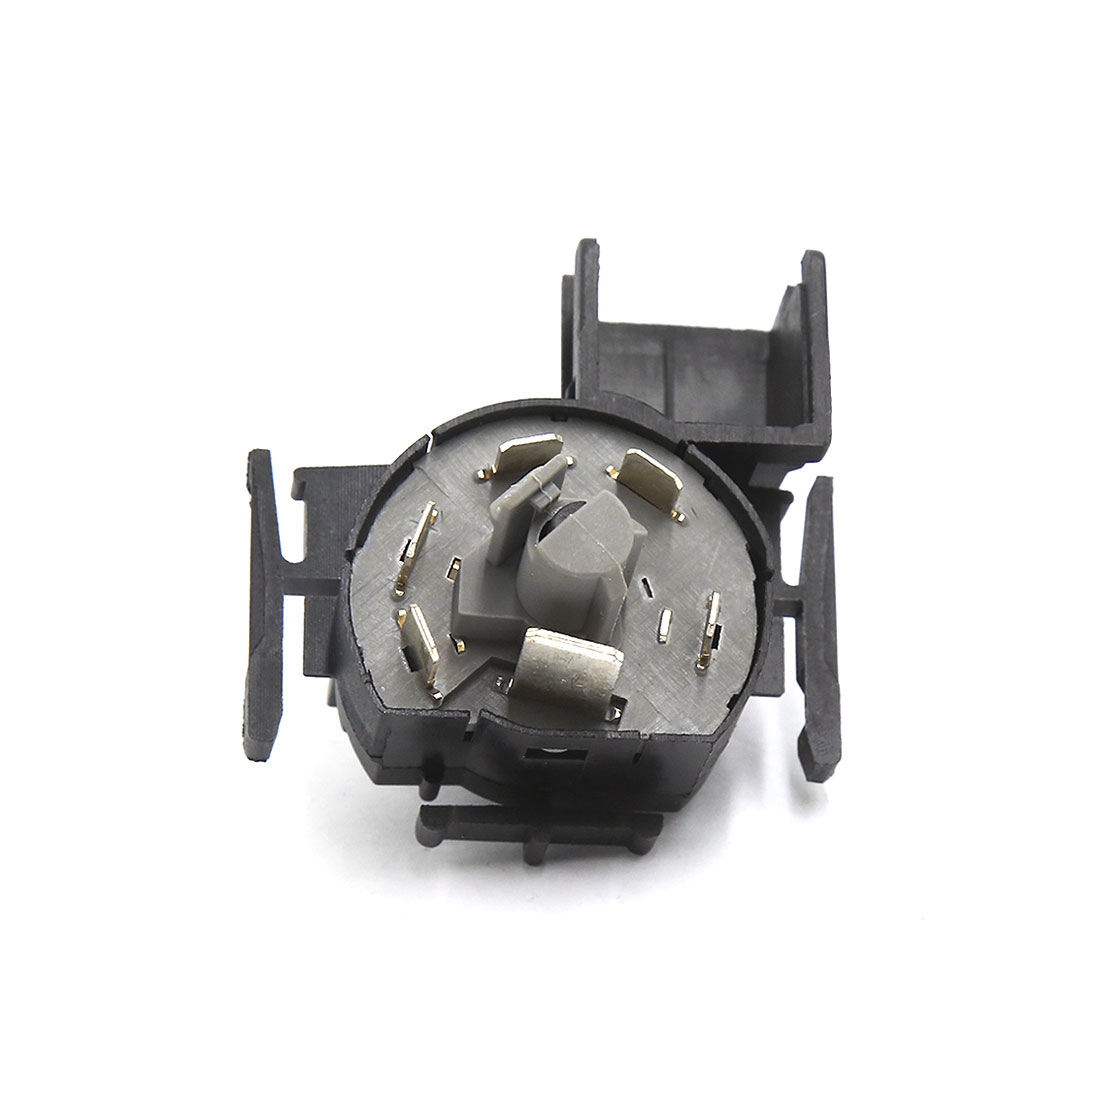 Ignition Switch 90589314 Fit for Vauxhall Astra MK4 MK IV (G) DTI 16V 1998-2005